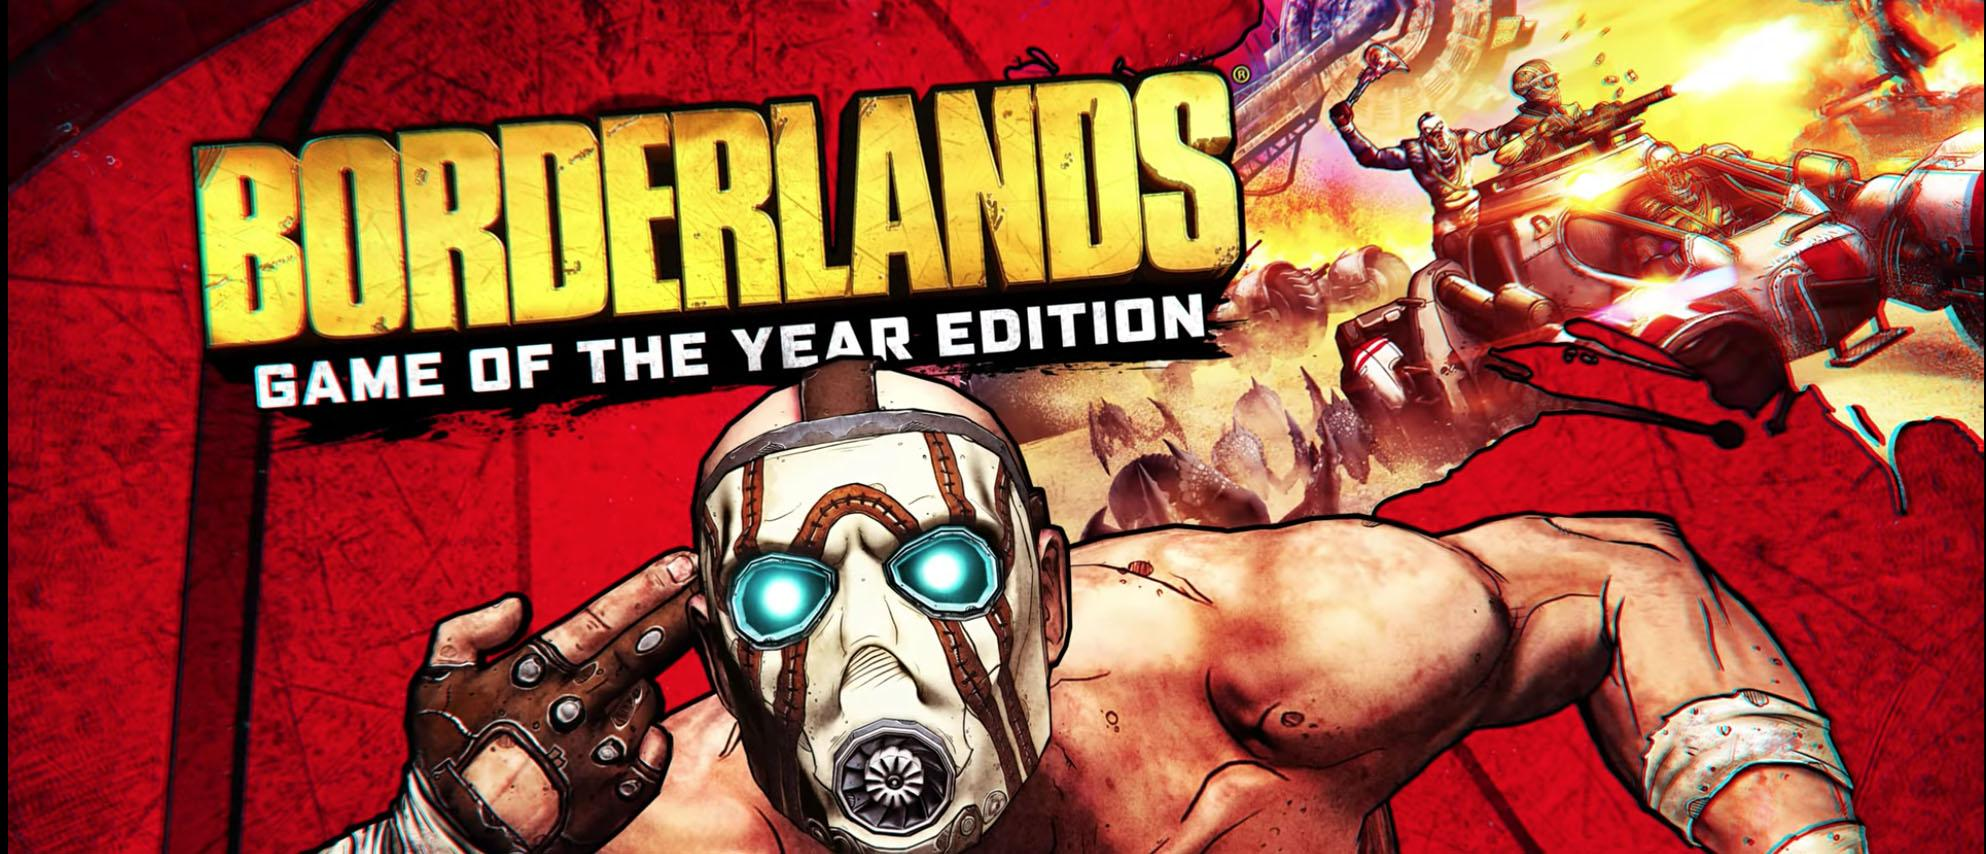 [PS4] Borderlands Game of the Year Edition